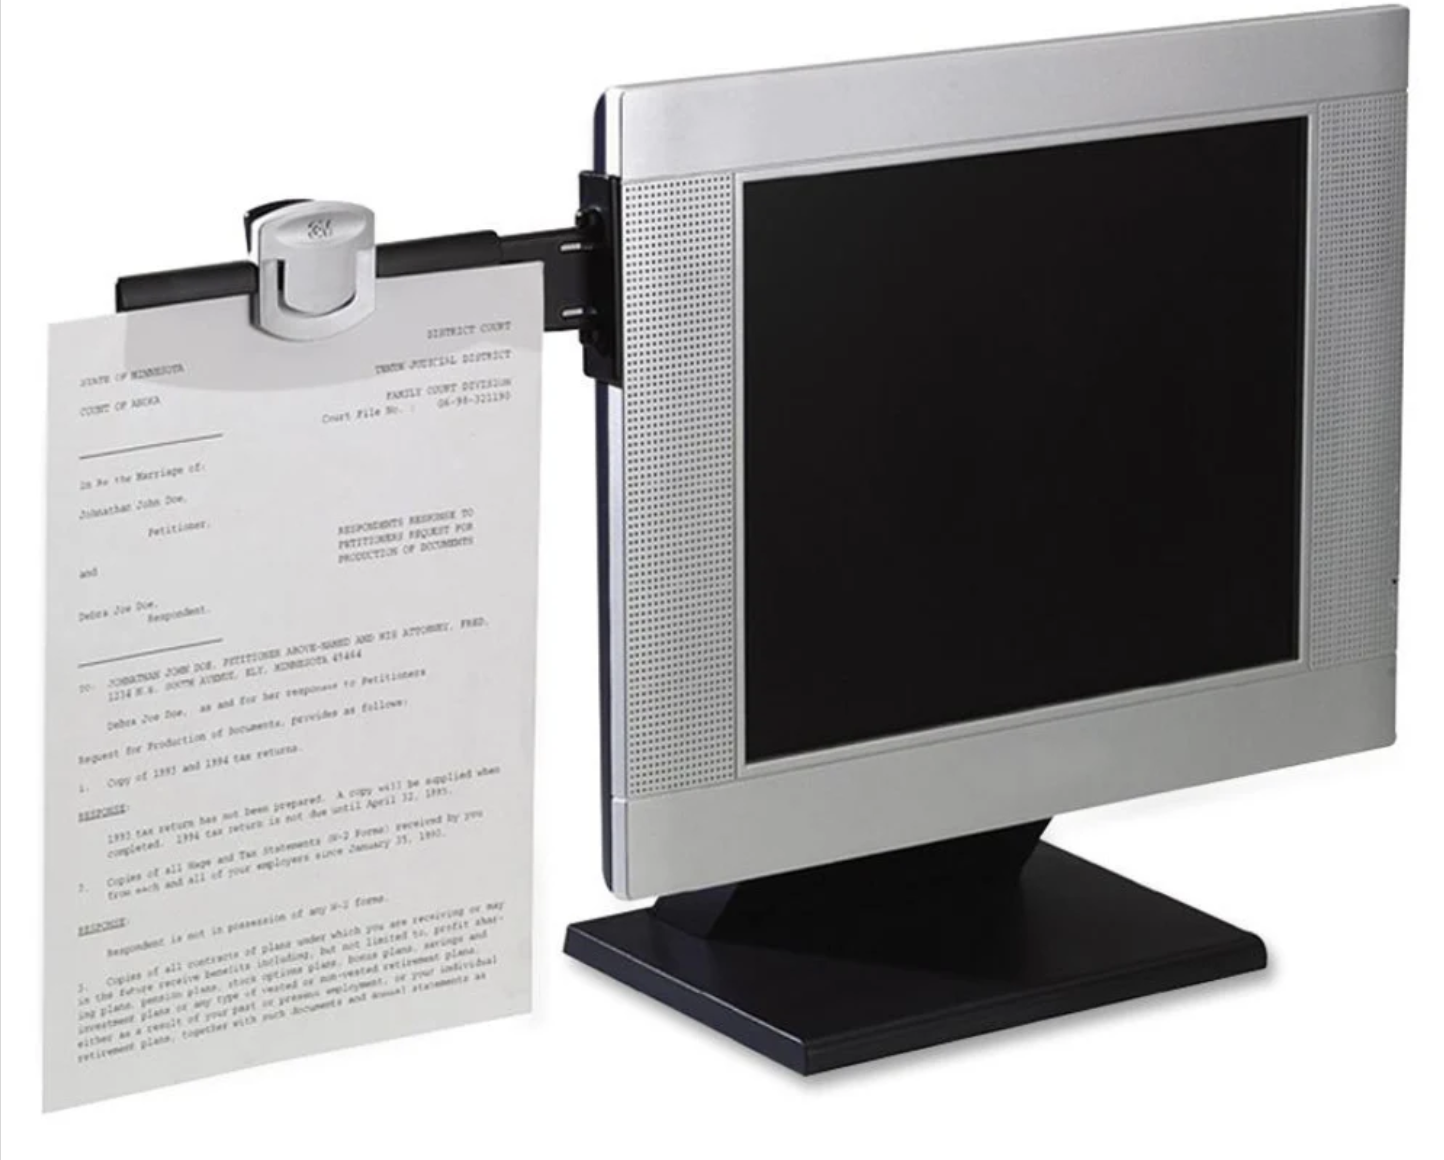 the 3M Monitor-Mount Dual Document Clip attached to a monitor with a document clipped to it